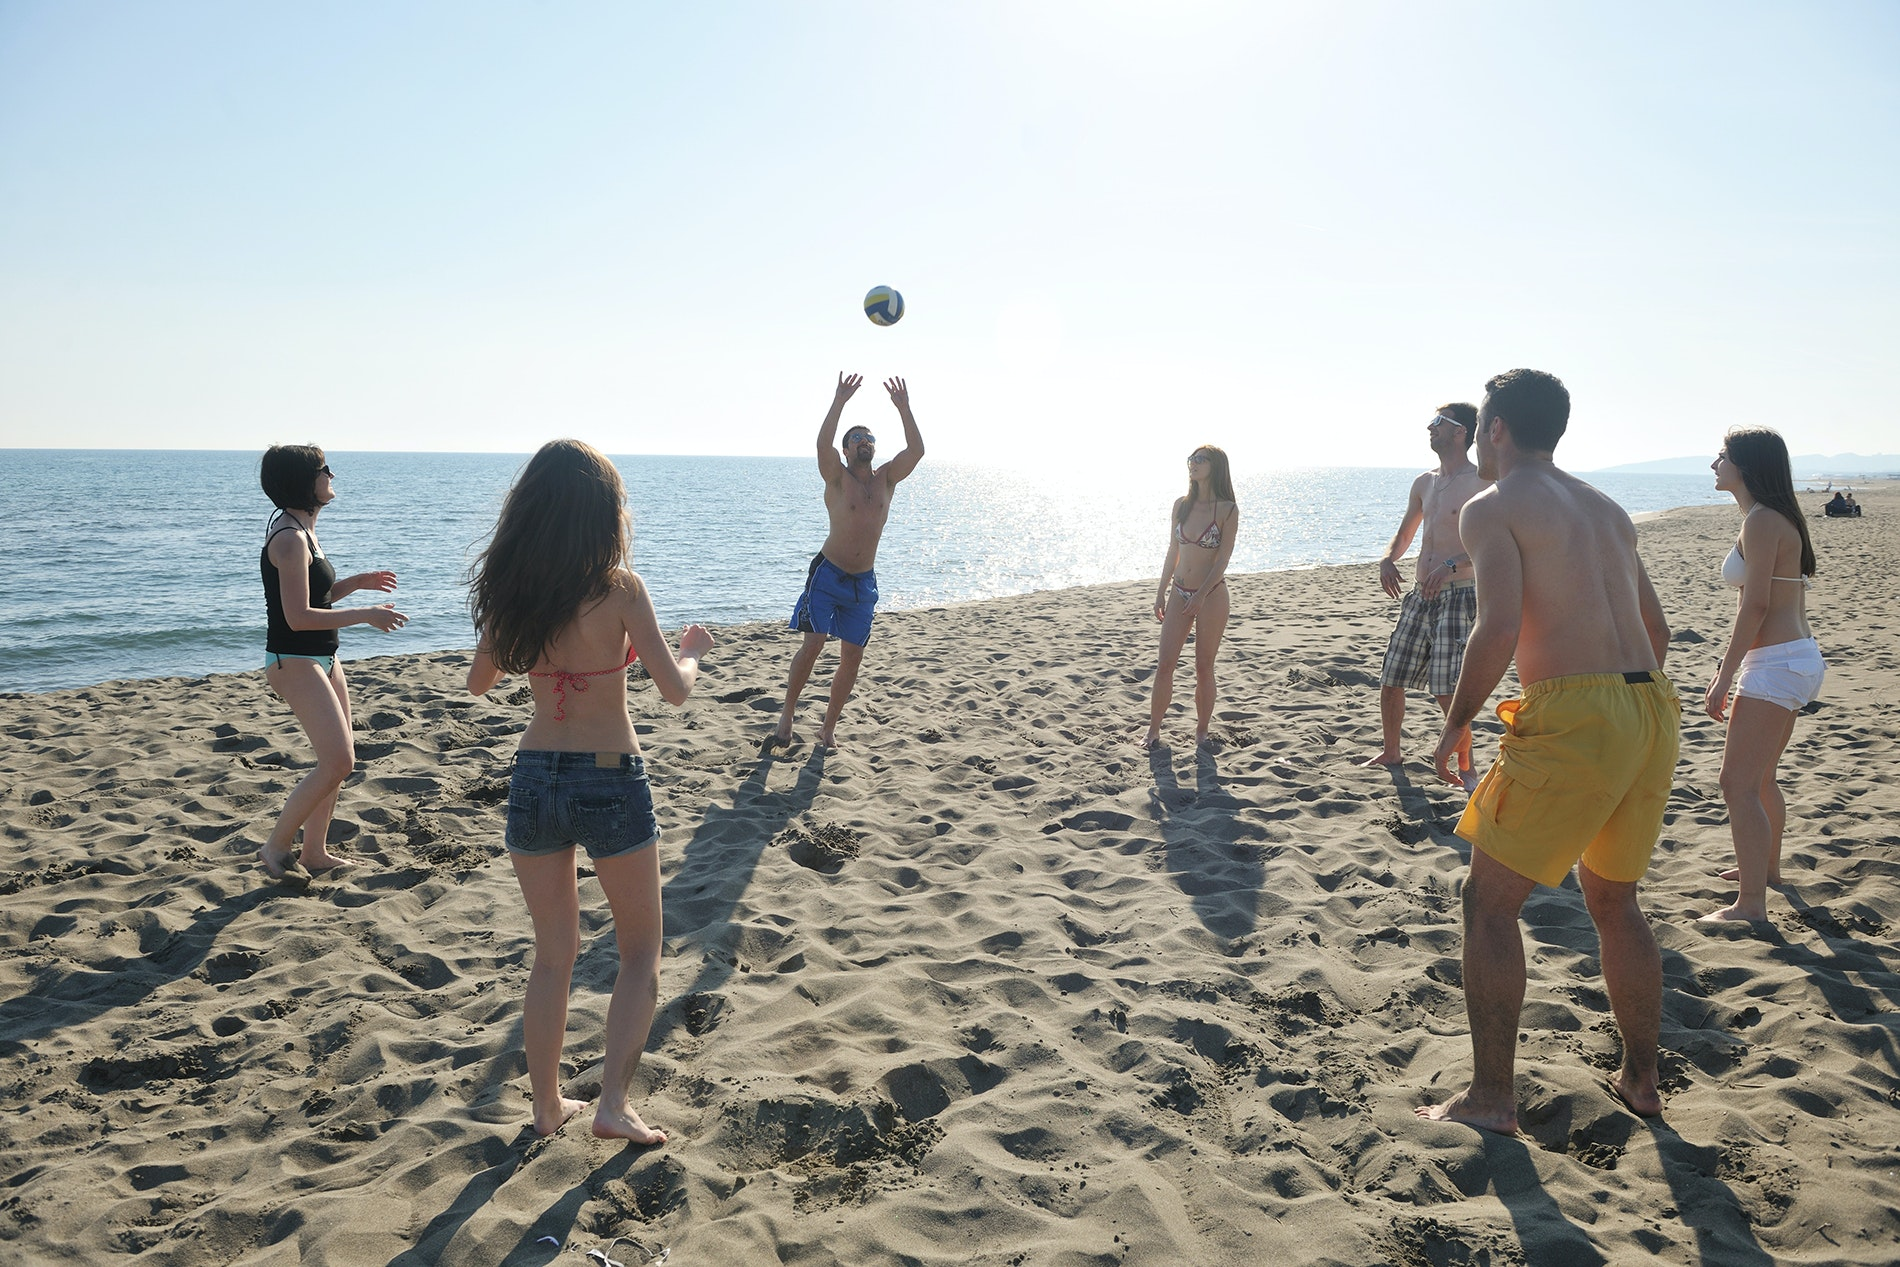 Volleyball is a classic beach-day activity for groups.